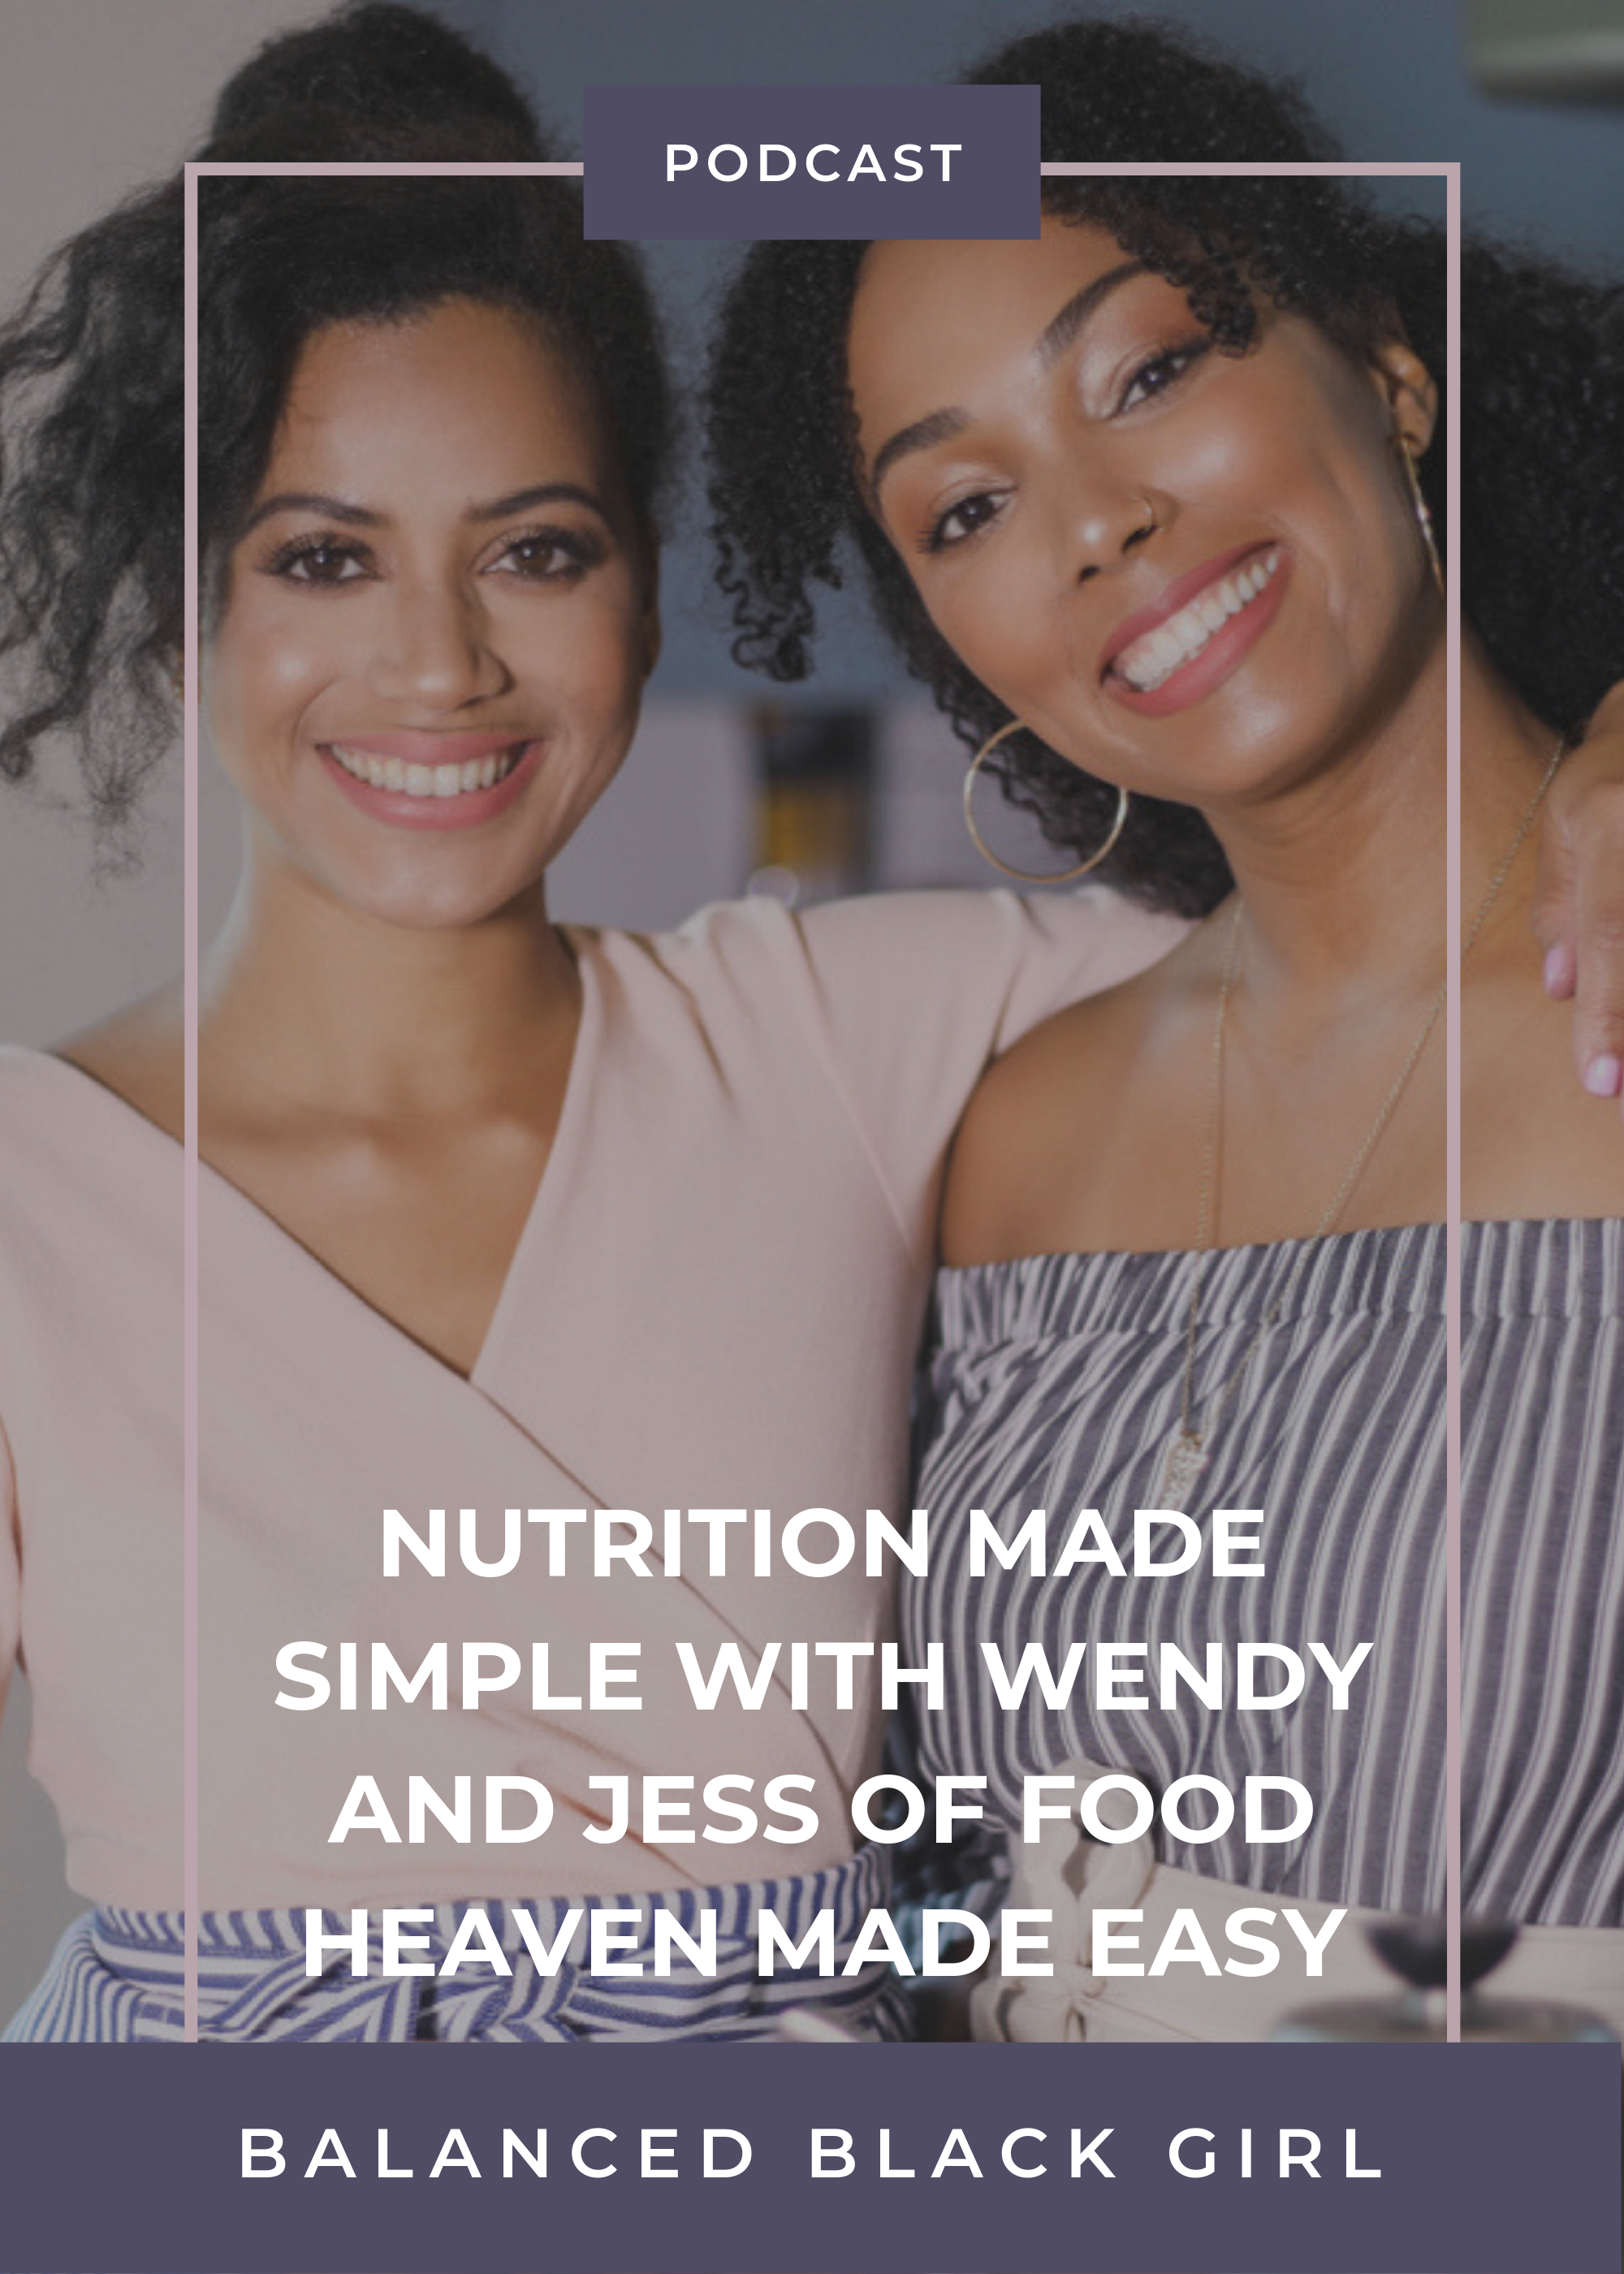 Nutrition Made Simple with Wendy and Jess from Food Heaven Made Easy | Balanced Black Girl Podcast